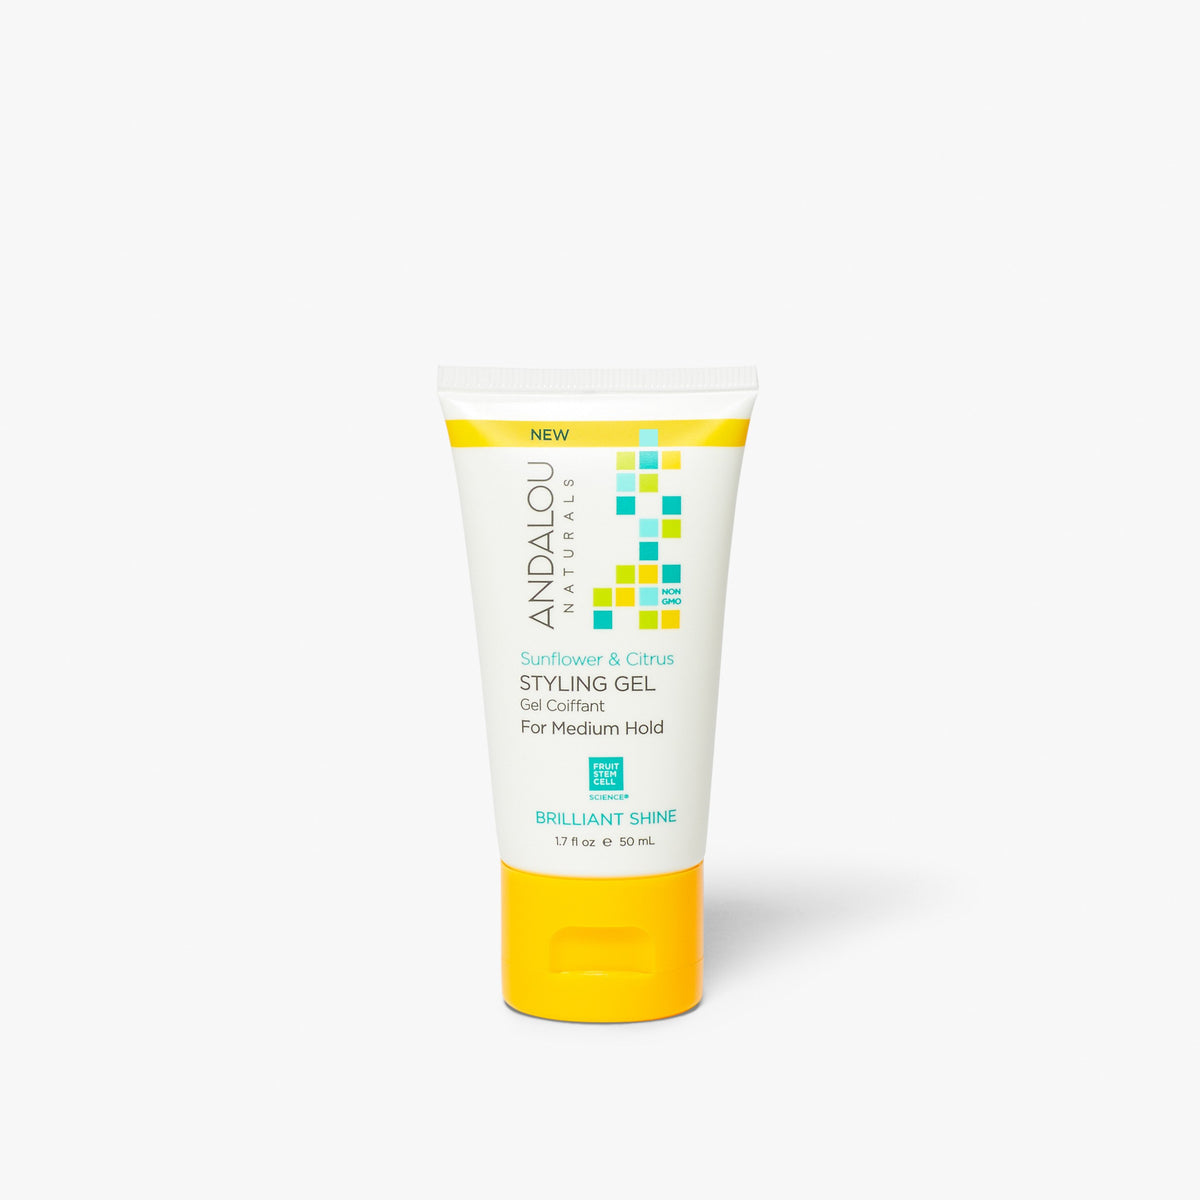 Sunflower & Citrus Brilliant Shine Styling Gel | Trial Size - Andalou Naturals US